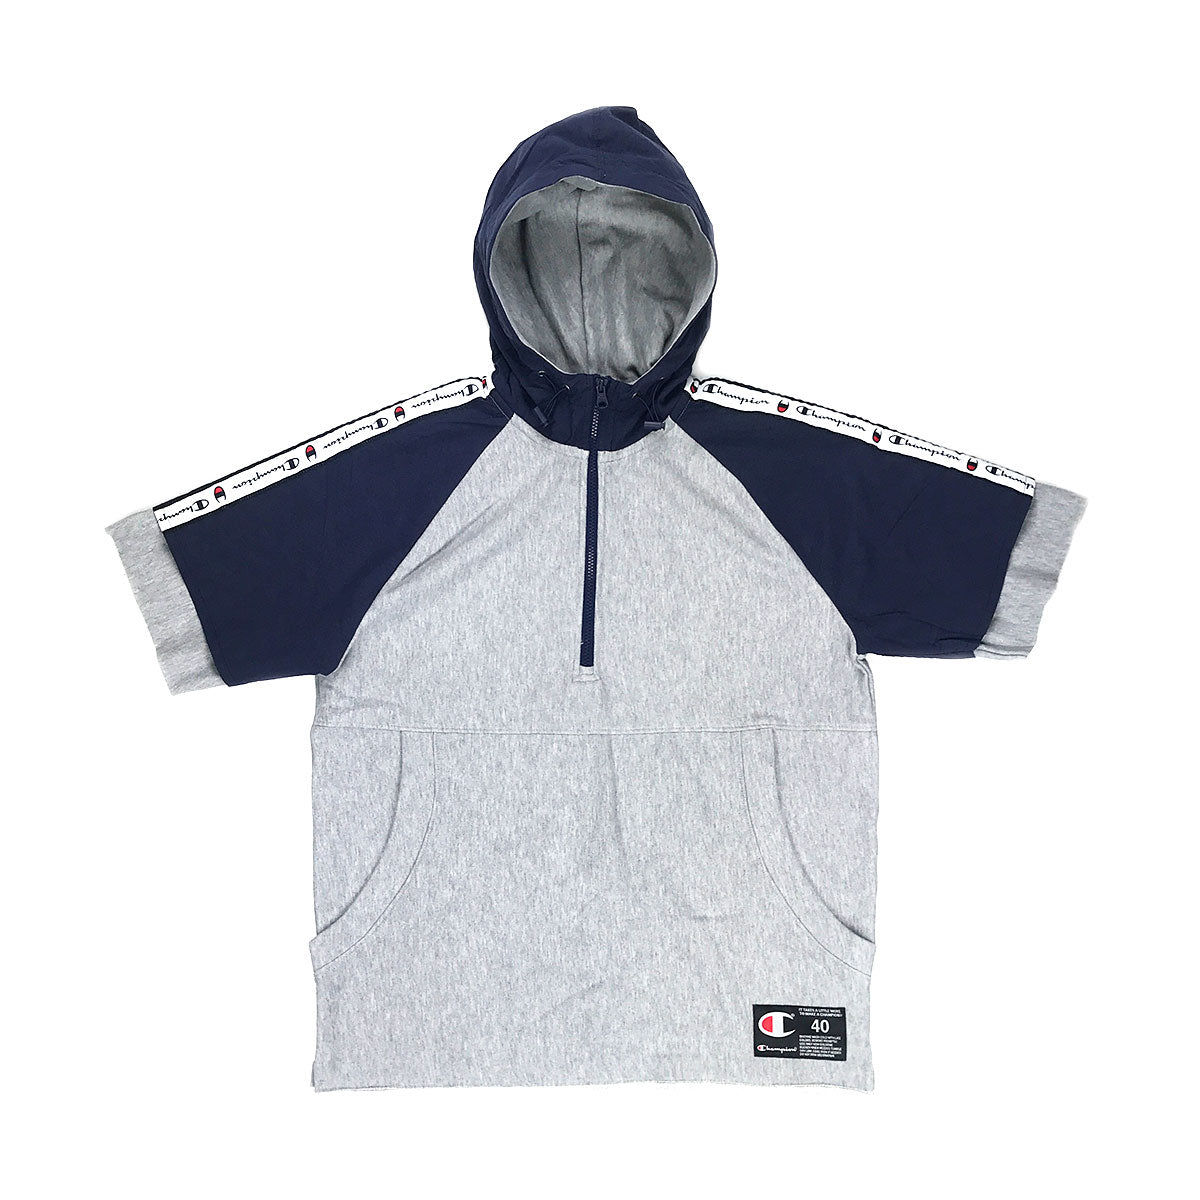 dc11e922 champion-reverse-weave-french-terry-quarter-zip-hoodie -oxford-grey.JPG?v=1527556145